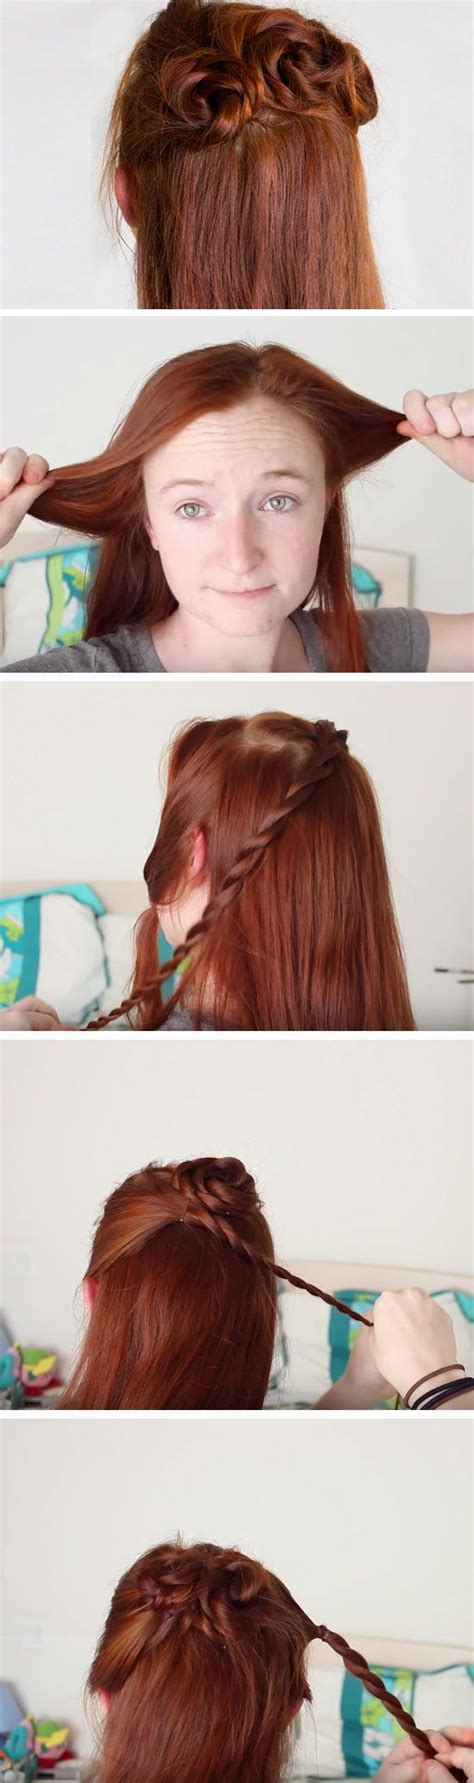 diy hairstyles games 20 best images about game of thrones on pinterest